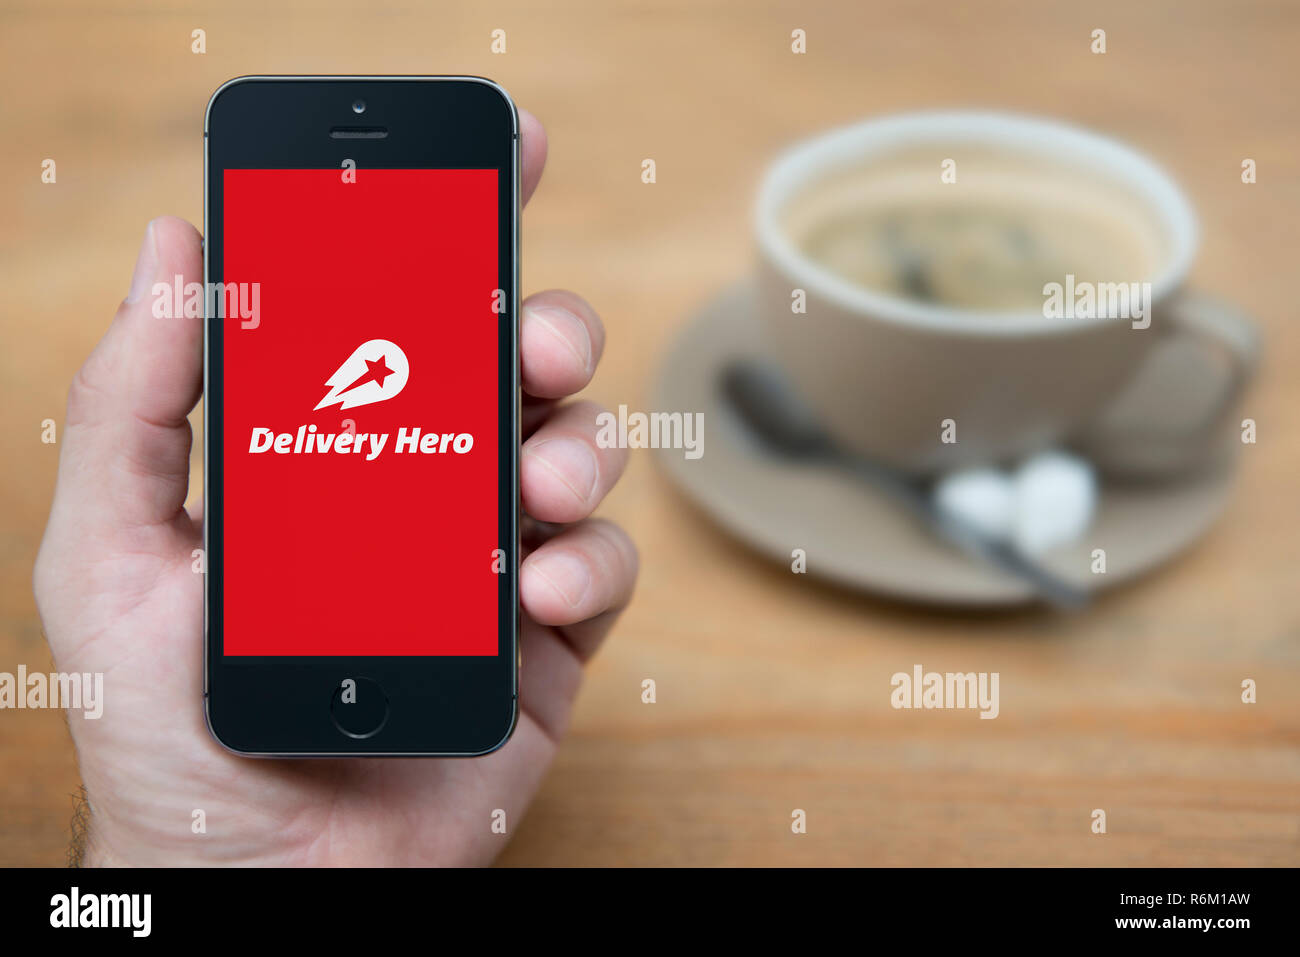 A man looks at his iPhone which displays the Delivery Hero logo (Editorial use only). - Stock Image